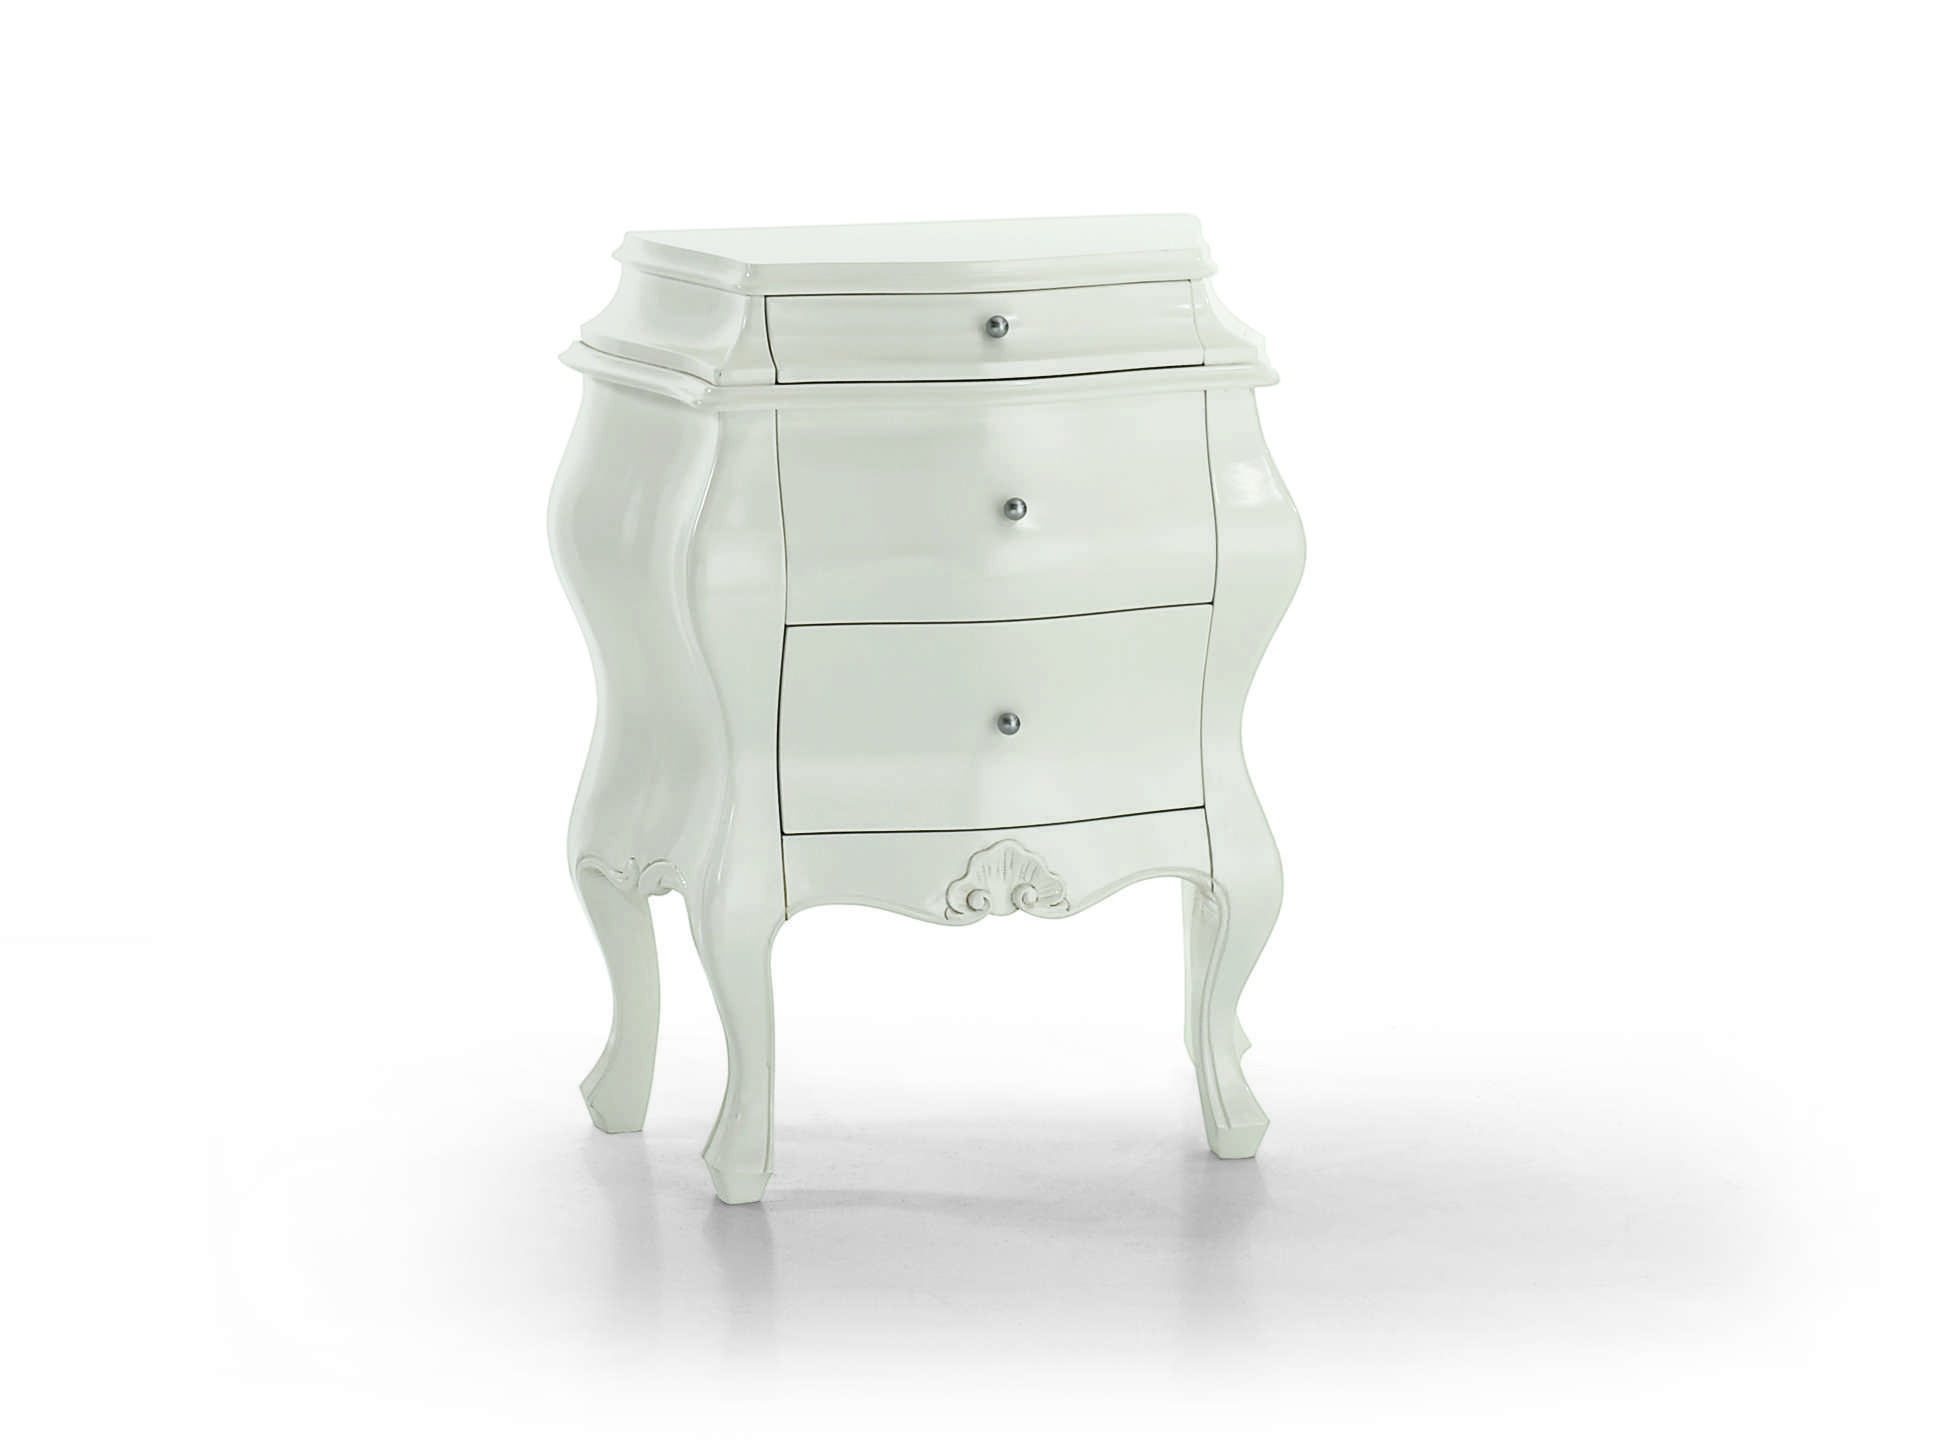 Commode maison laqu e la feuille d 39 argent piermaria - Console commode ...